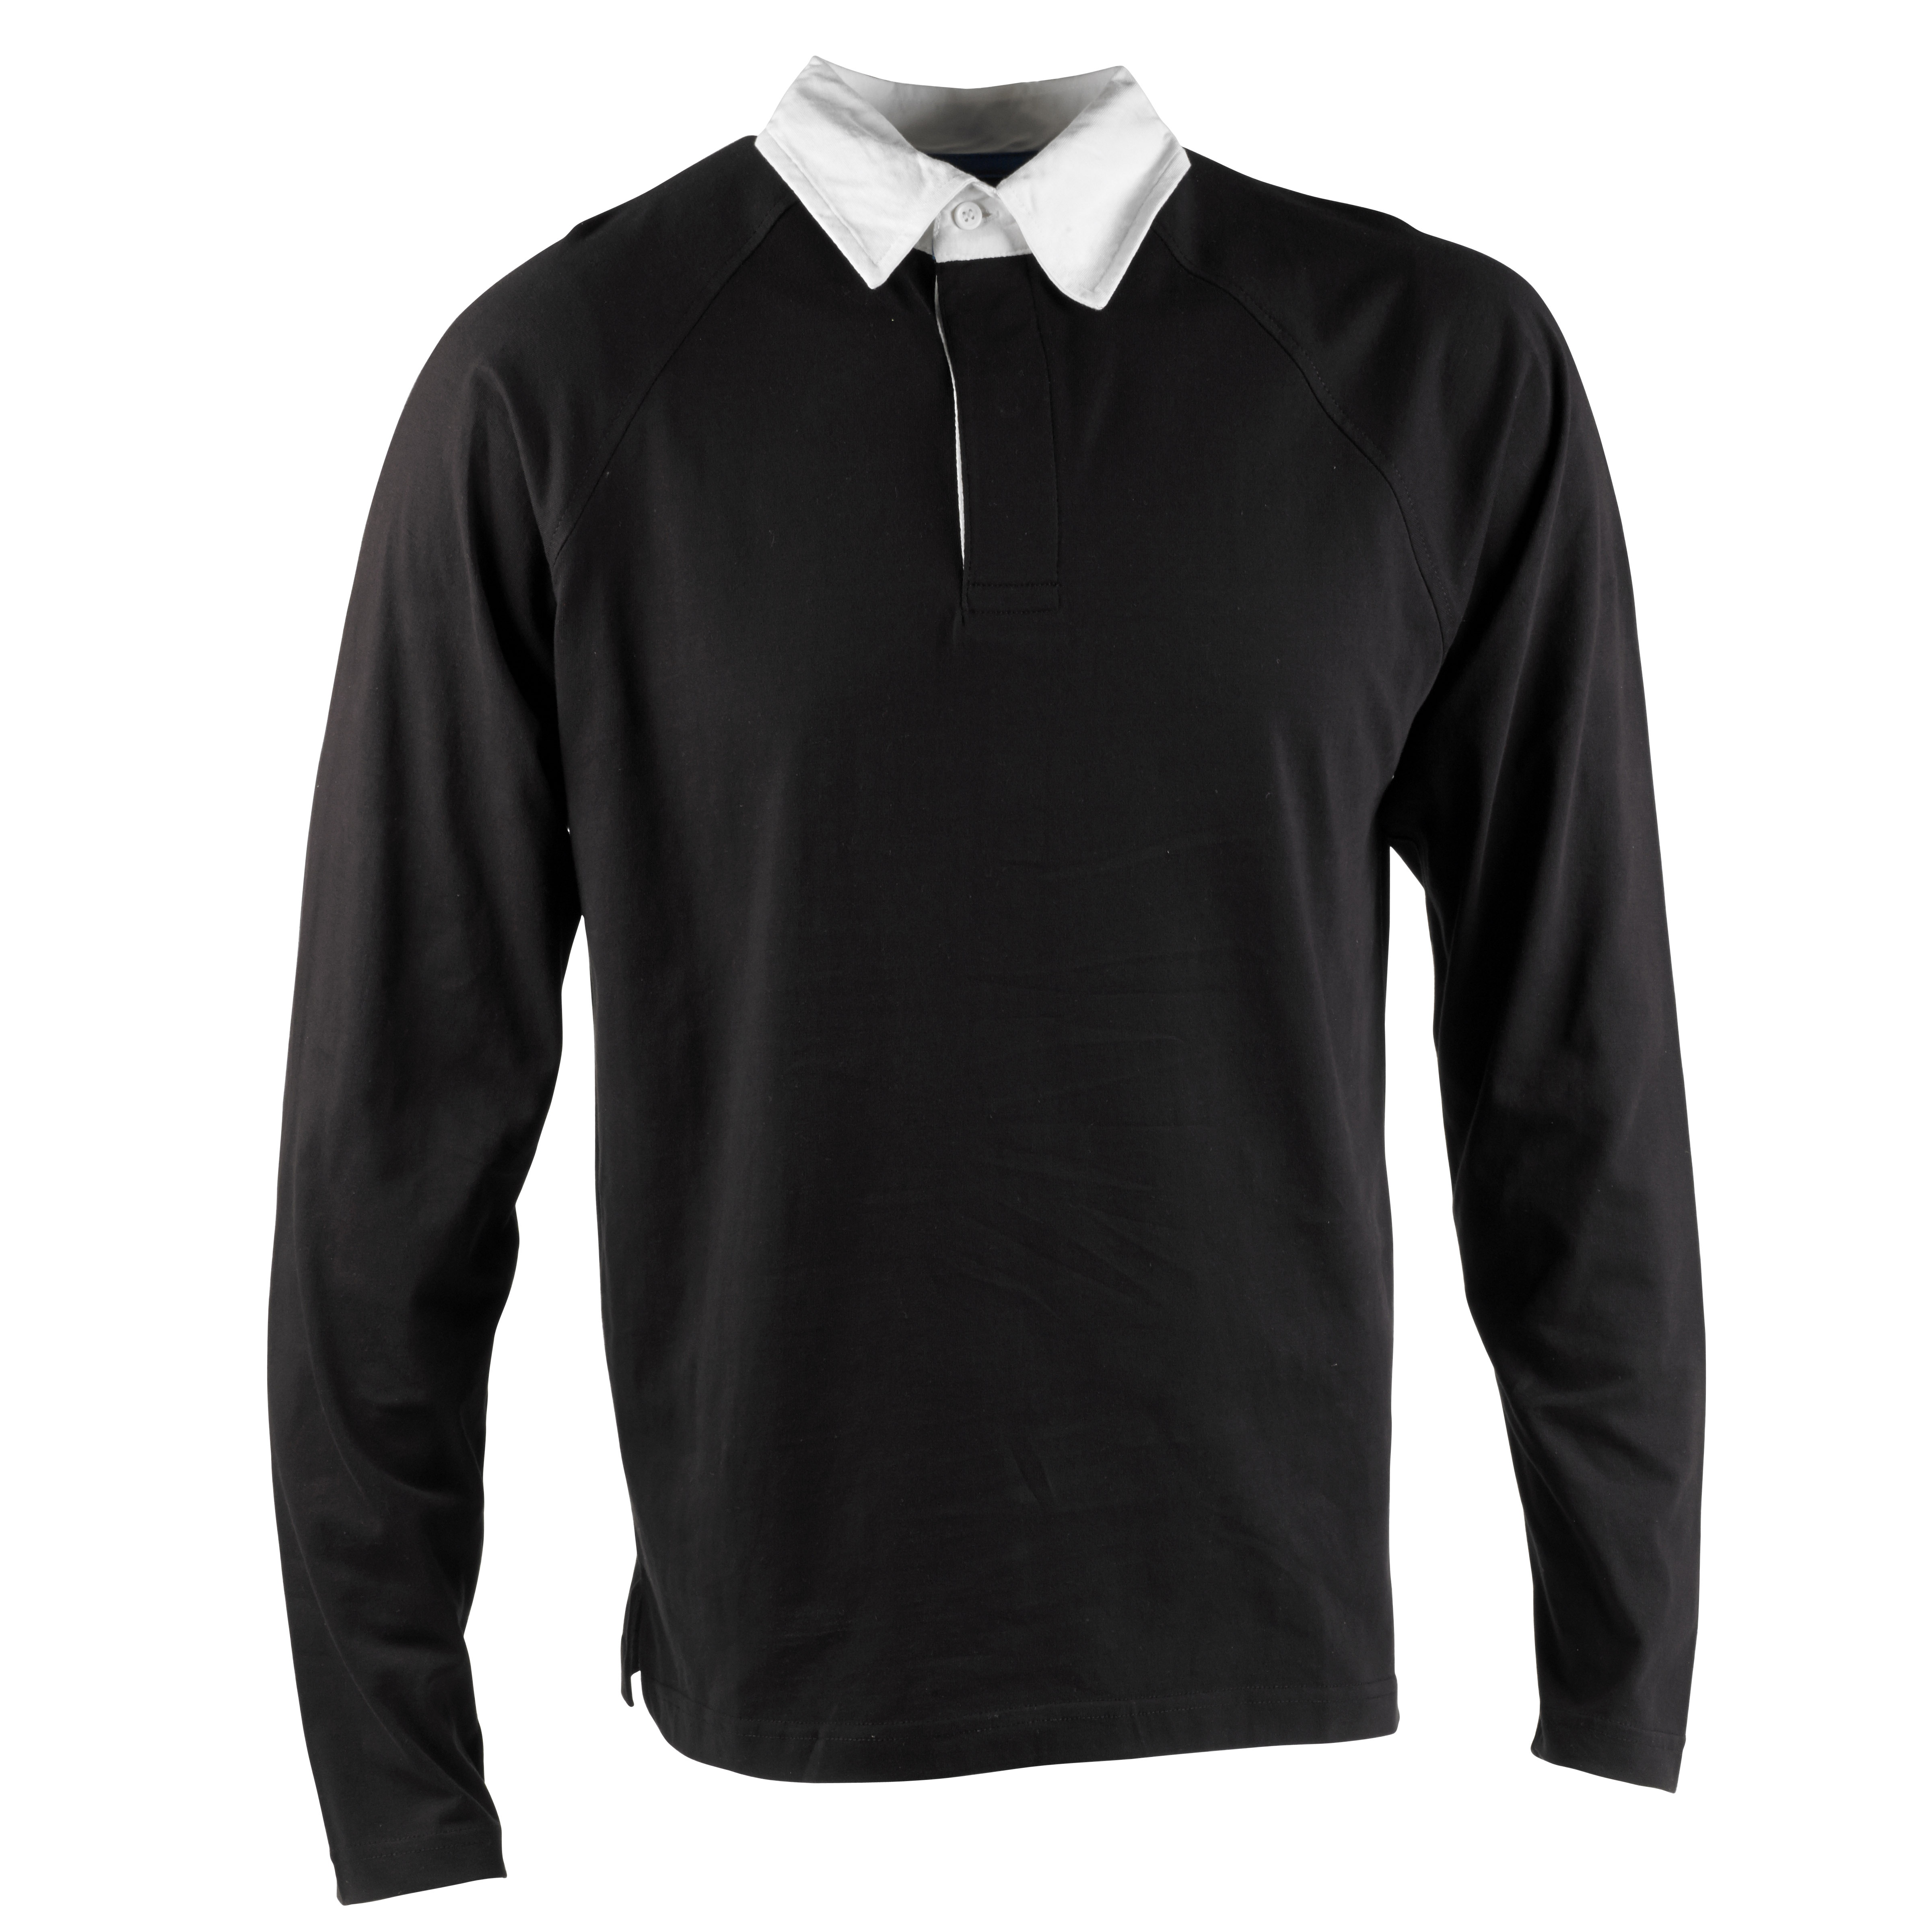 Find black and white rugby shirt at ShopStyle. Shop the latest collection of black and white rugby shirt from the most popular stores - all in one.